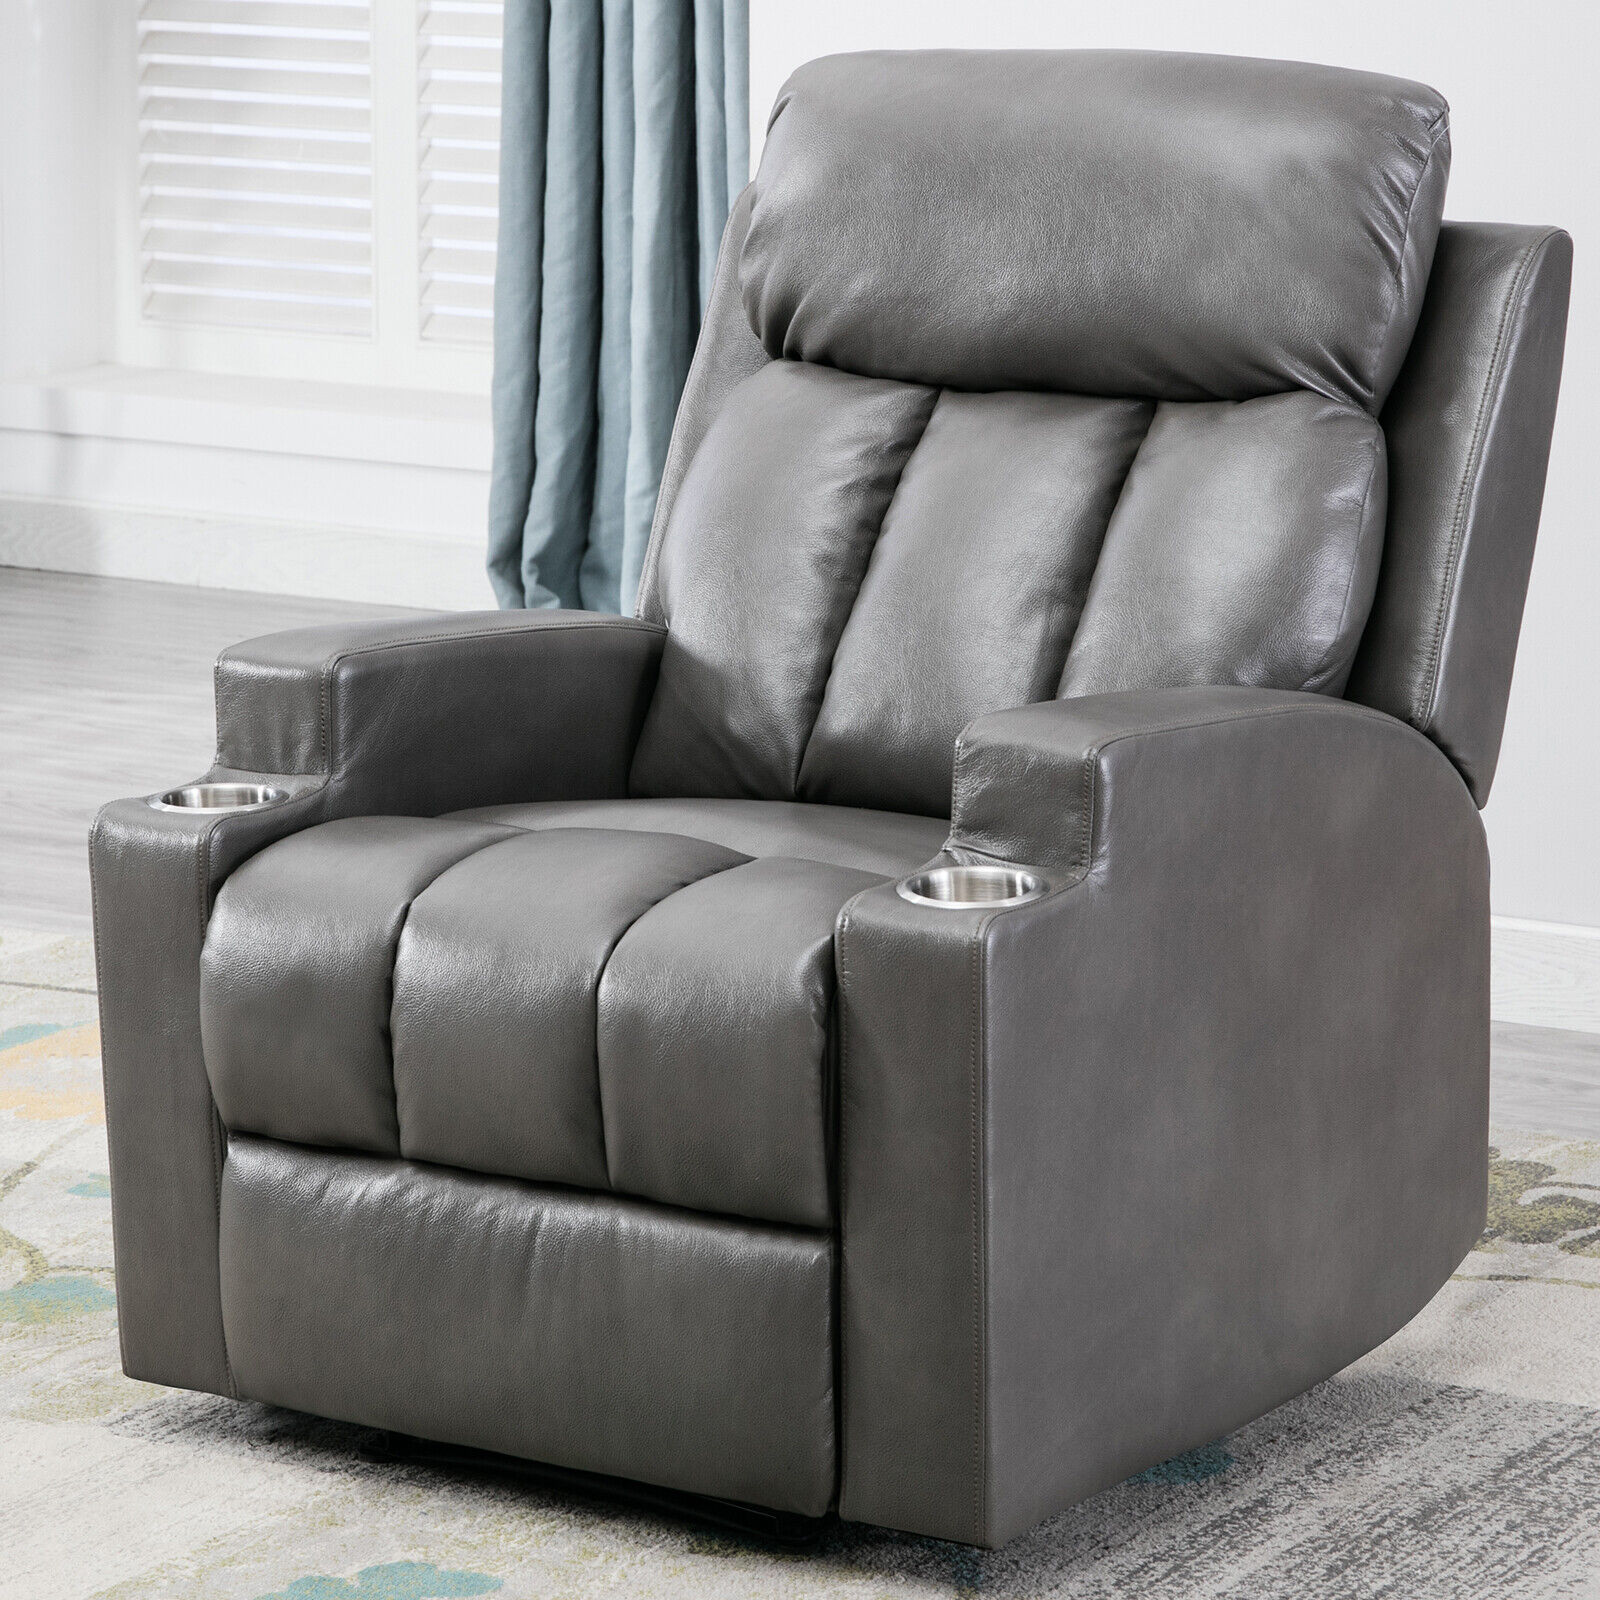 Manual Recliner Chair With 2 Cup Holders Breathable PU Leath